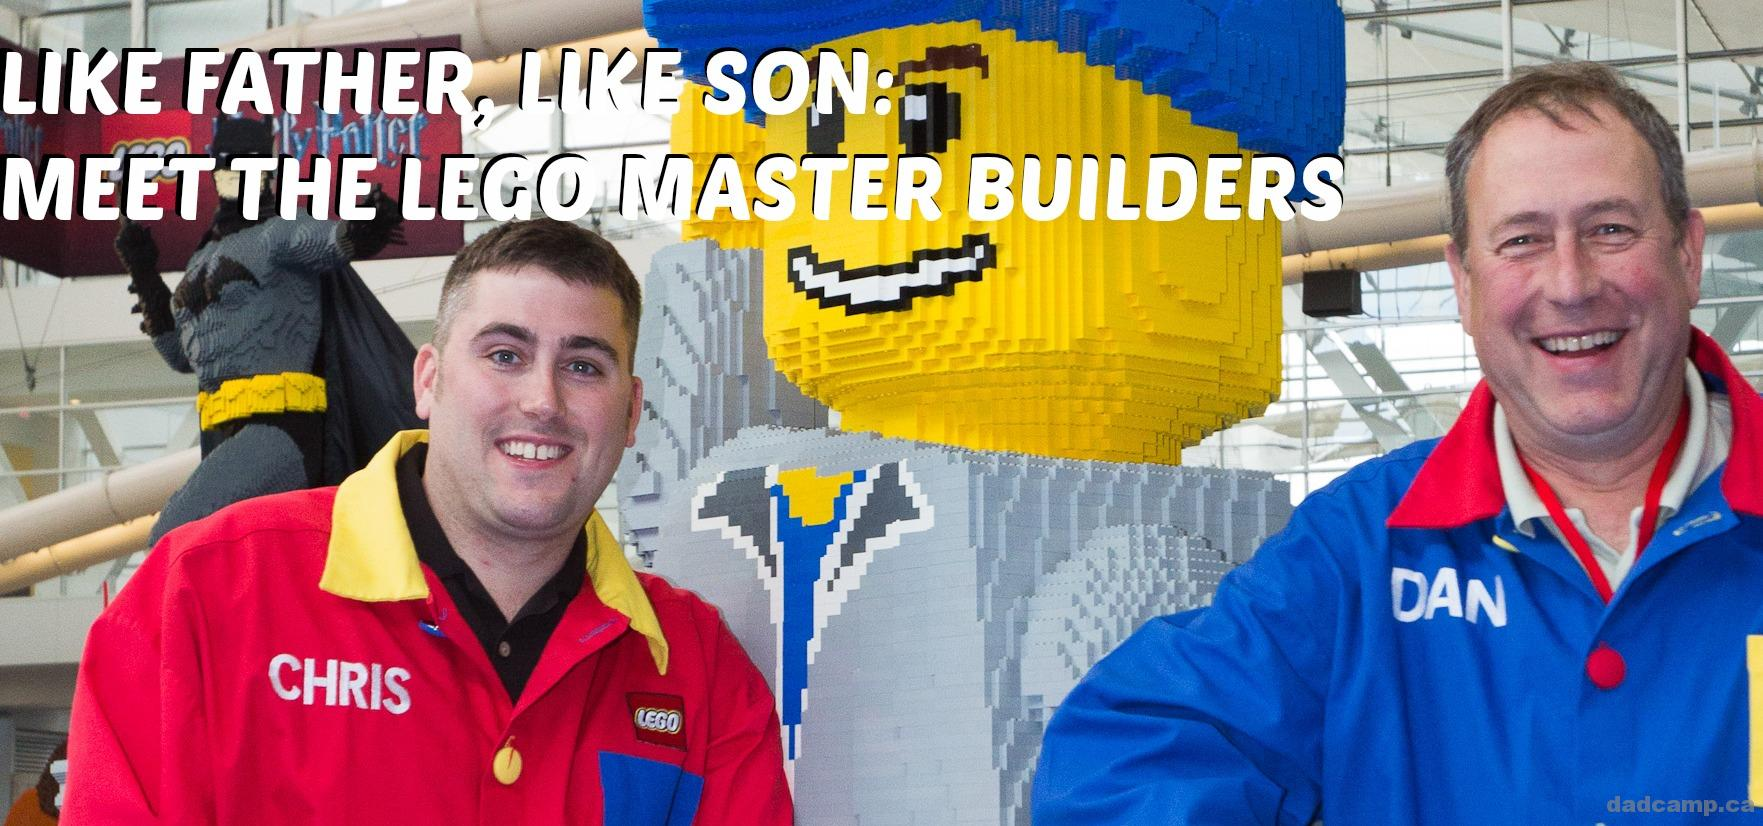 LIKE FATHER, LIKE SON: ONE-ON-ONE WITH A LEGO MASTER BUILDER